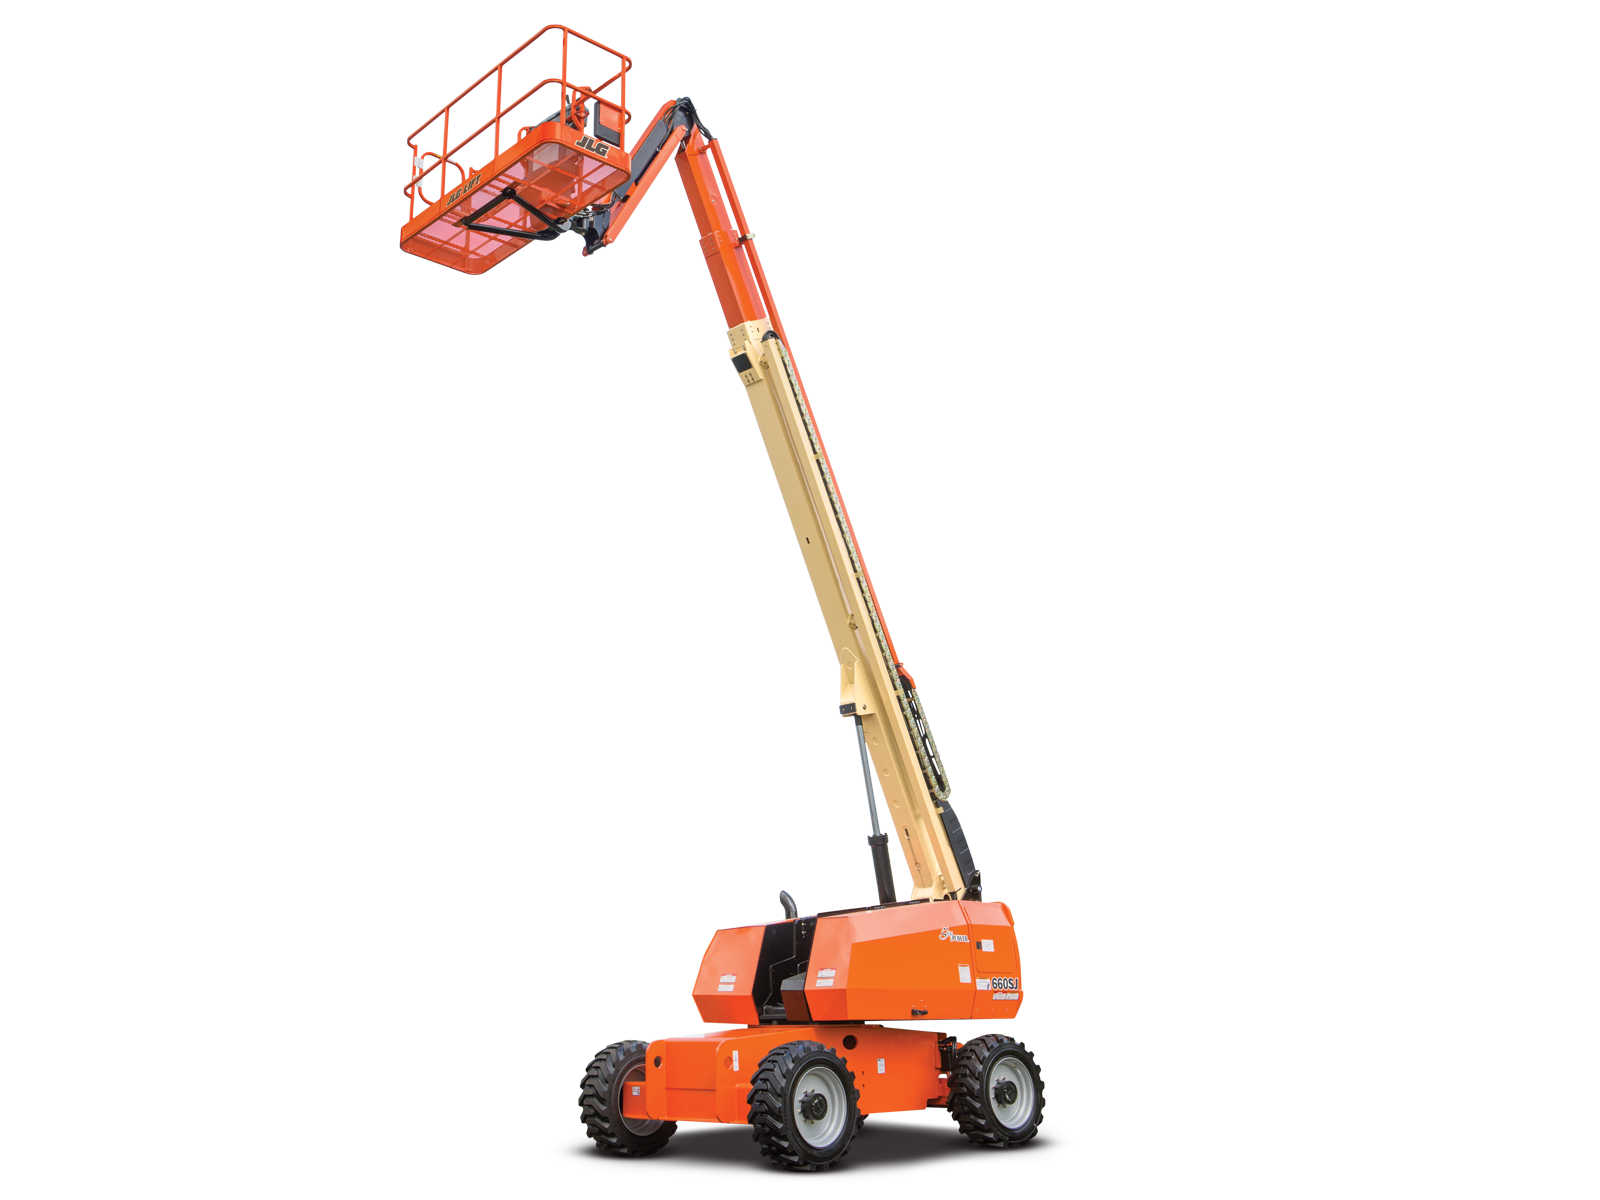 660sj gallery silo?w=100 660sj telescopic boom lift jlg  at crackthecode.co